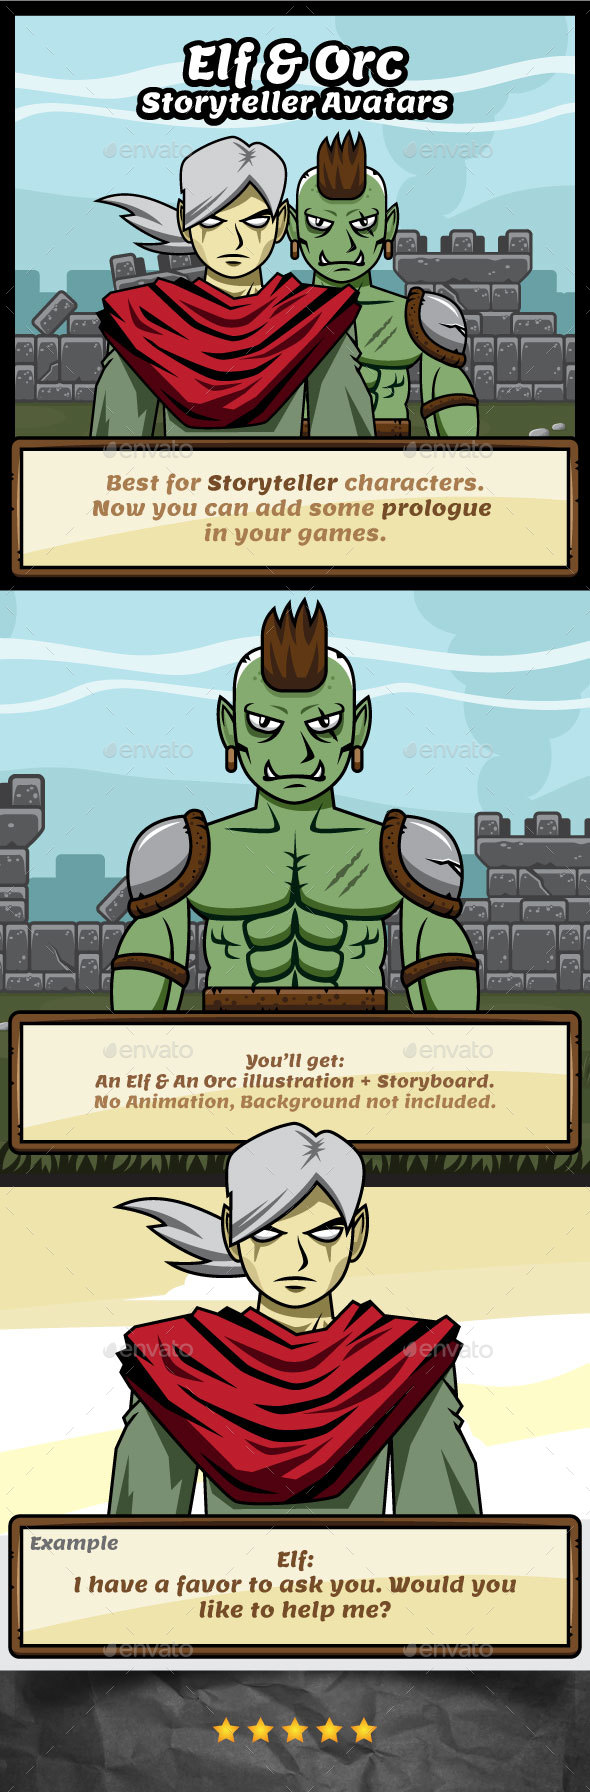 Elf and Orc The Storyteller Avatars for Game Prologue - Miscellaneous Game Assets